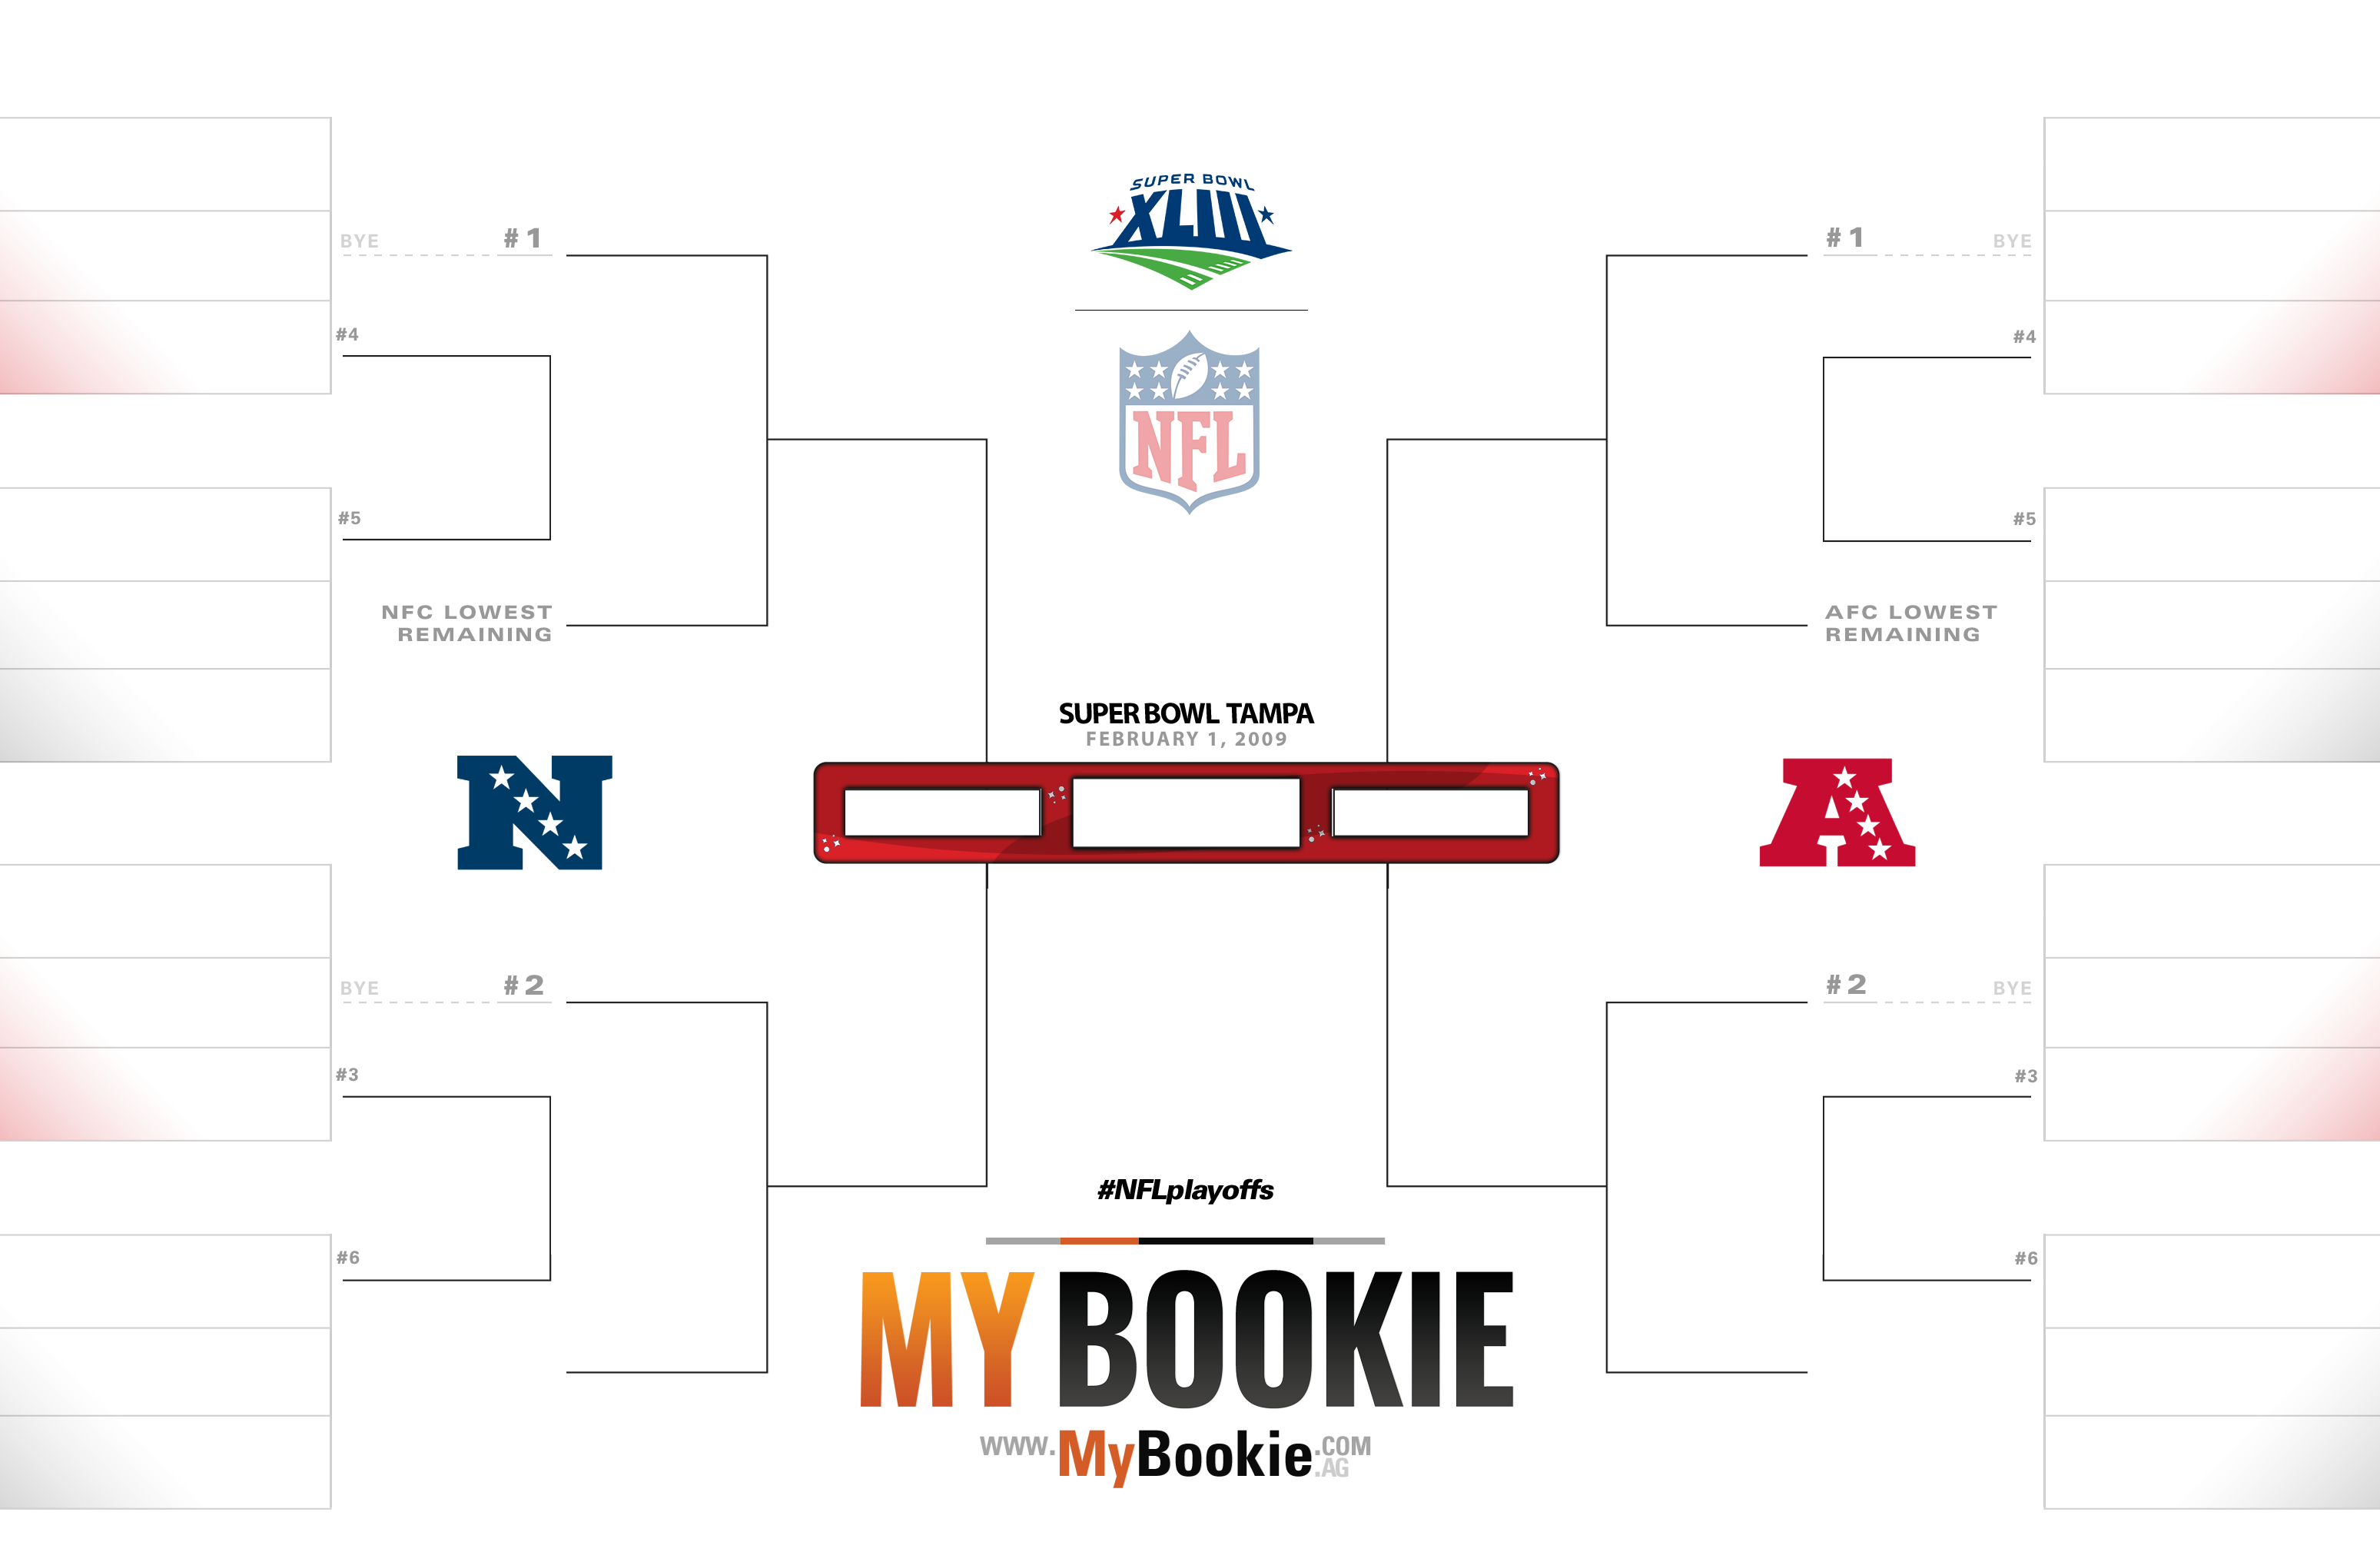 NFL Playoffs / Superbowl 2009 Printable Bracket